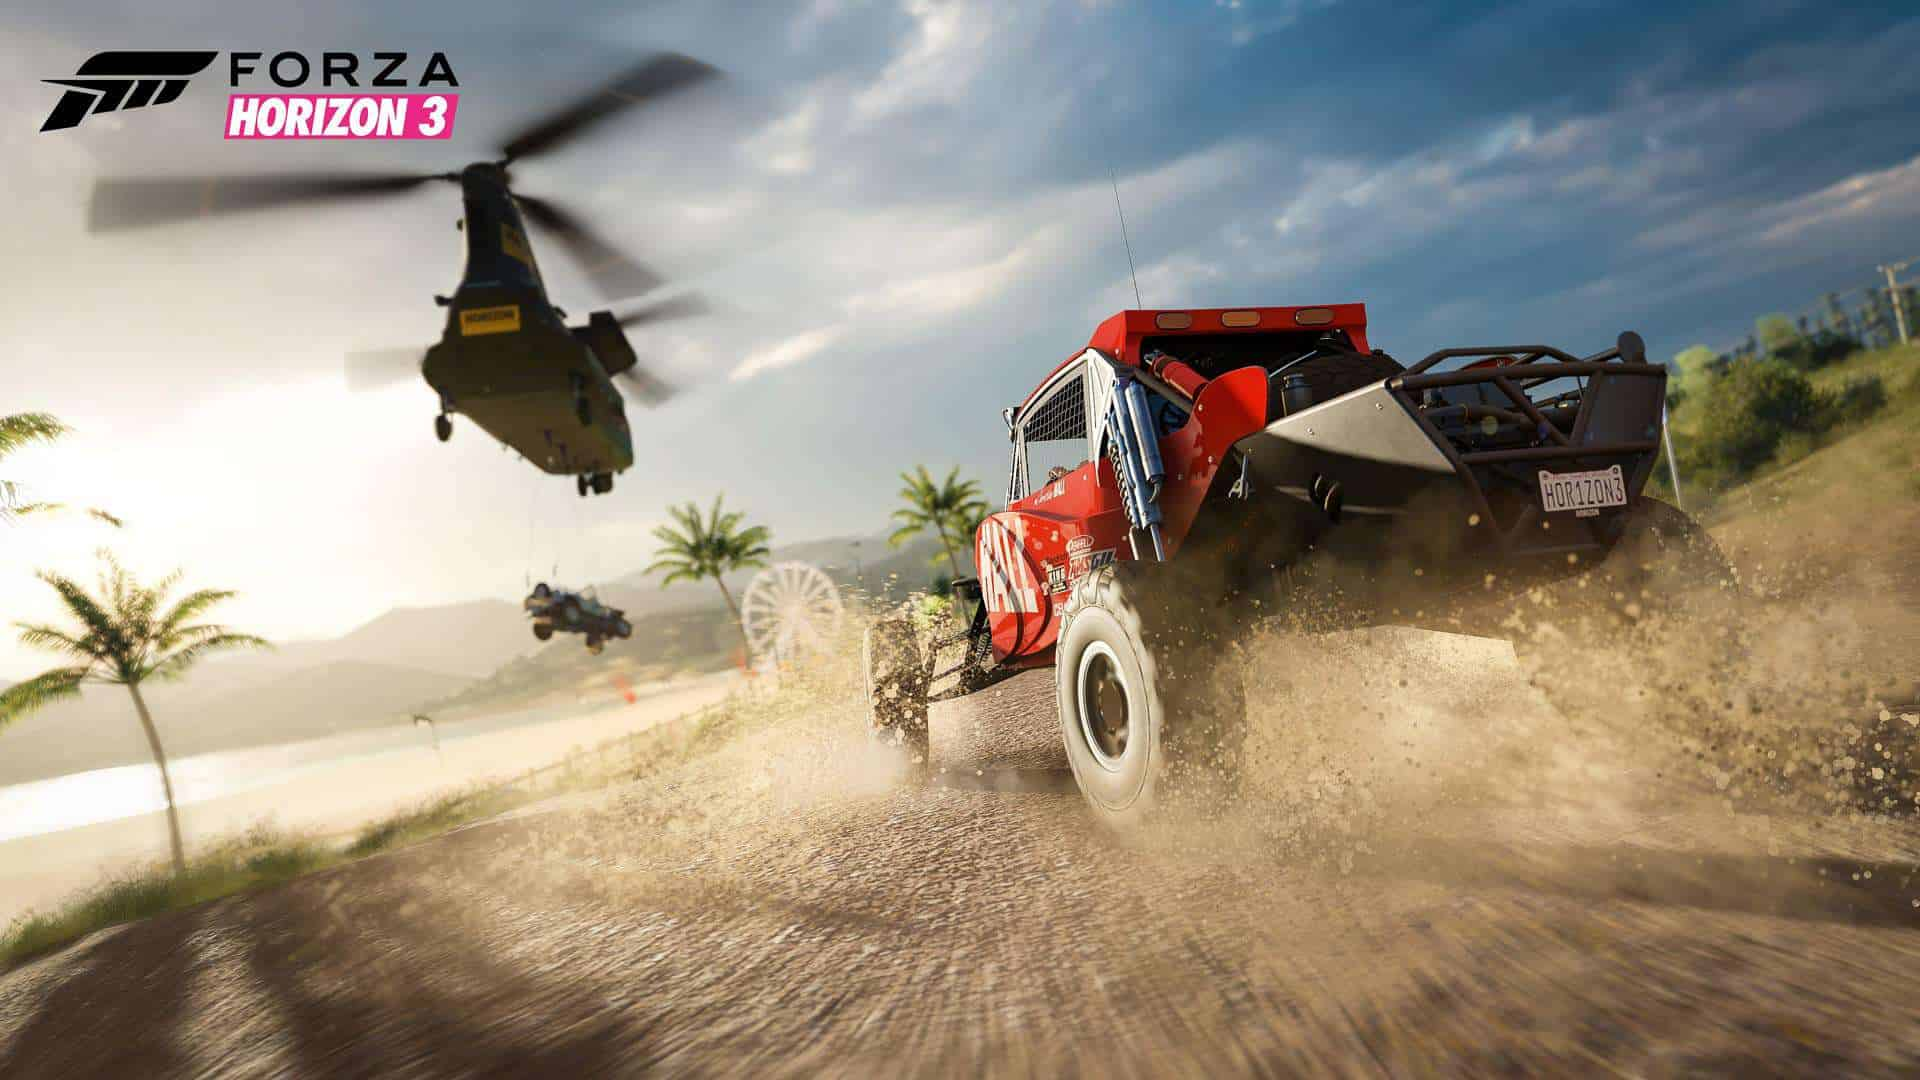 forza horizon 3 download pc tpb